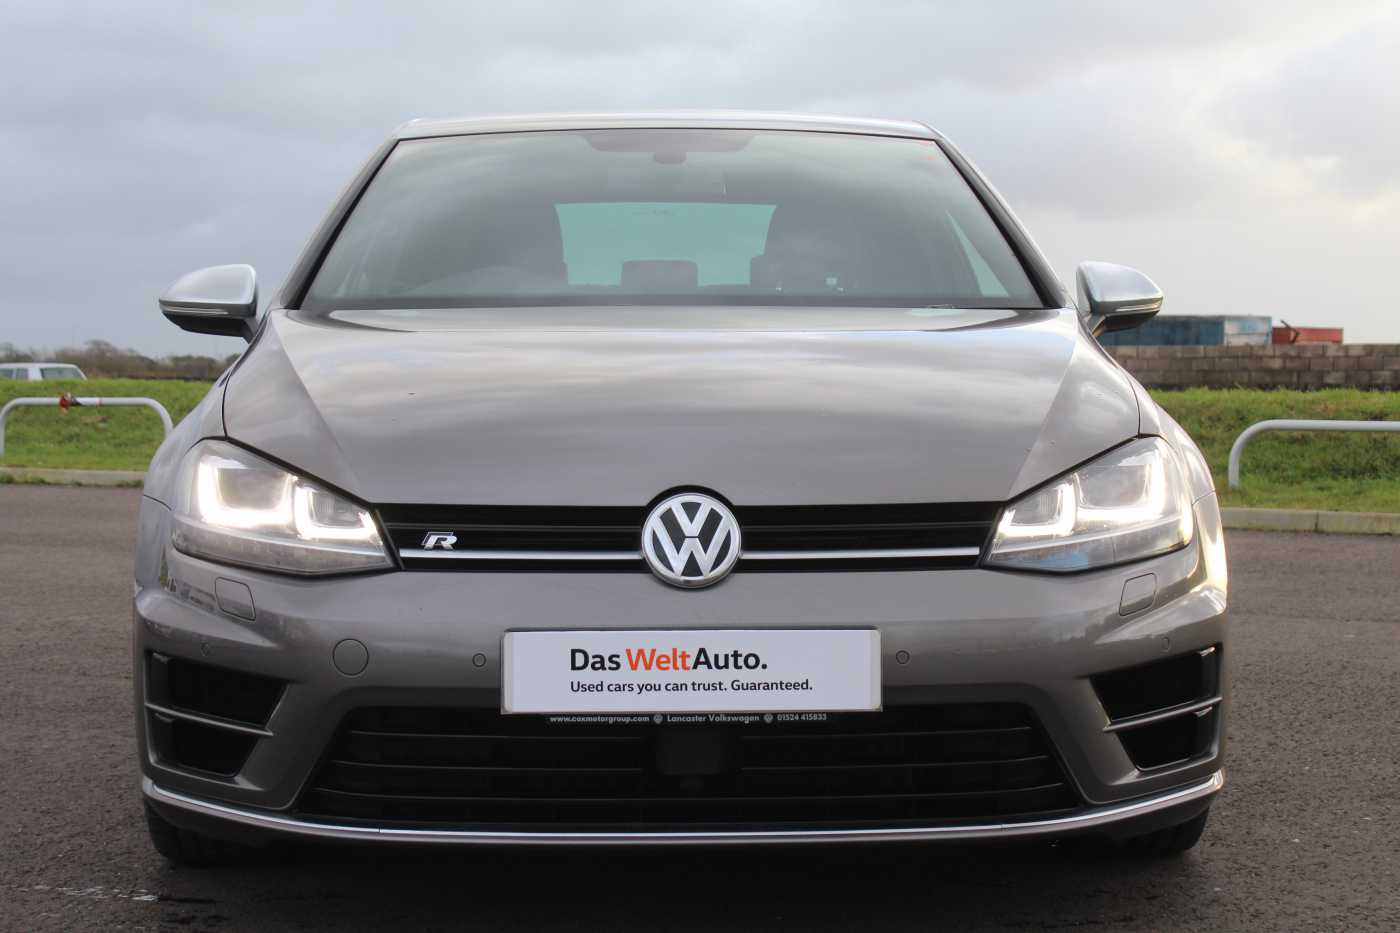 Volkswagen Golf 2.0 TSI R (300 PS) 3-Dr